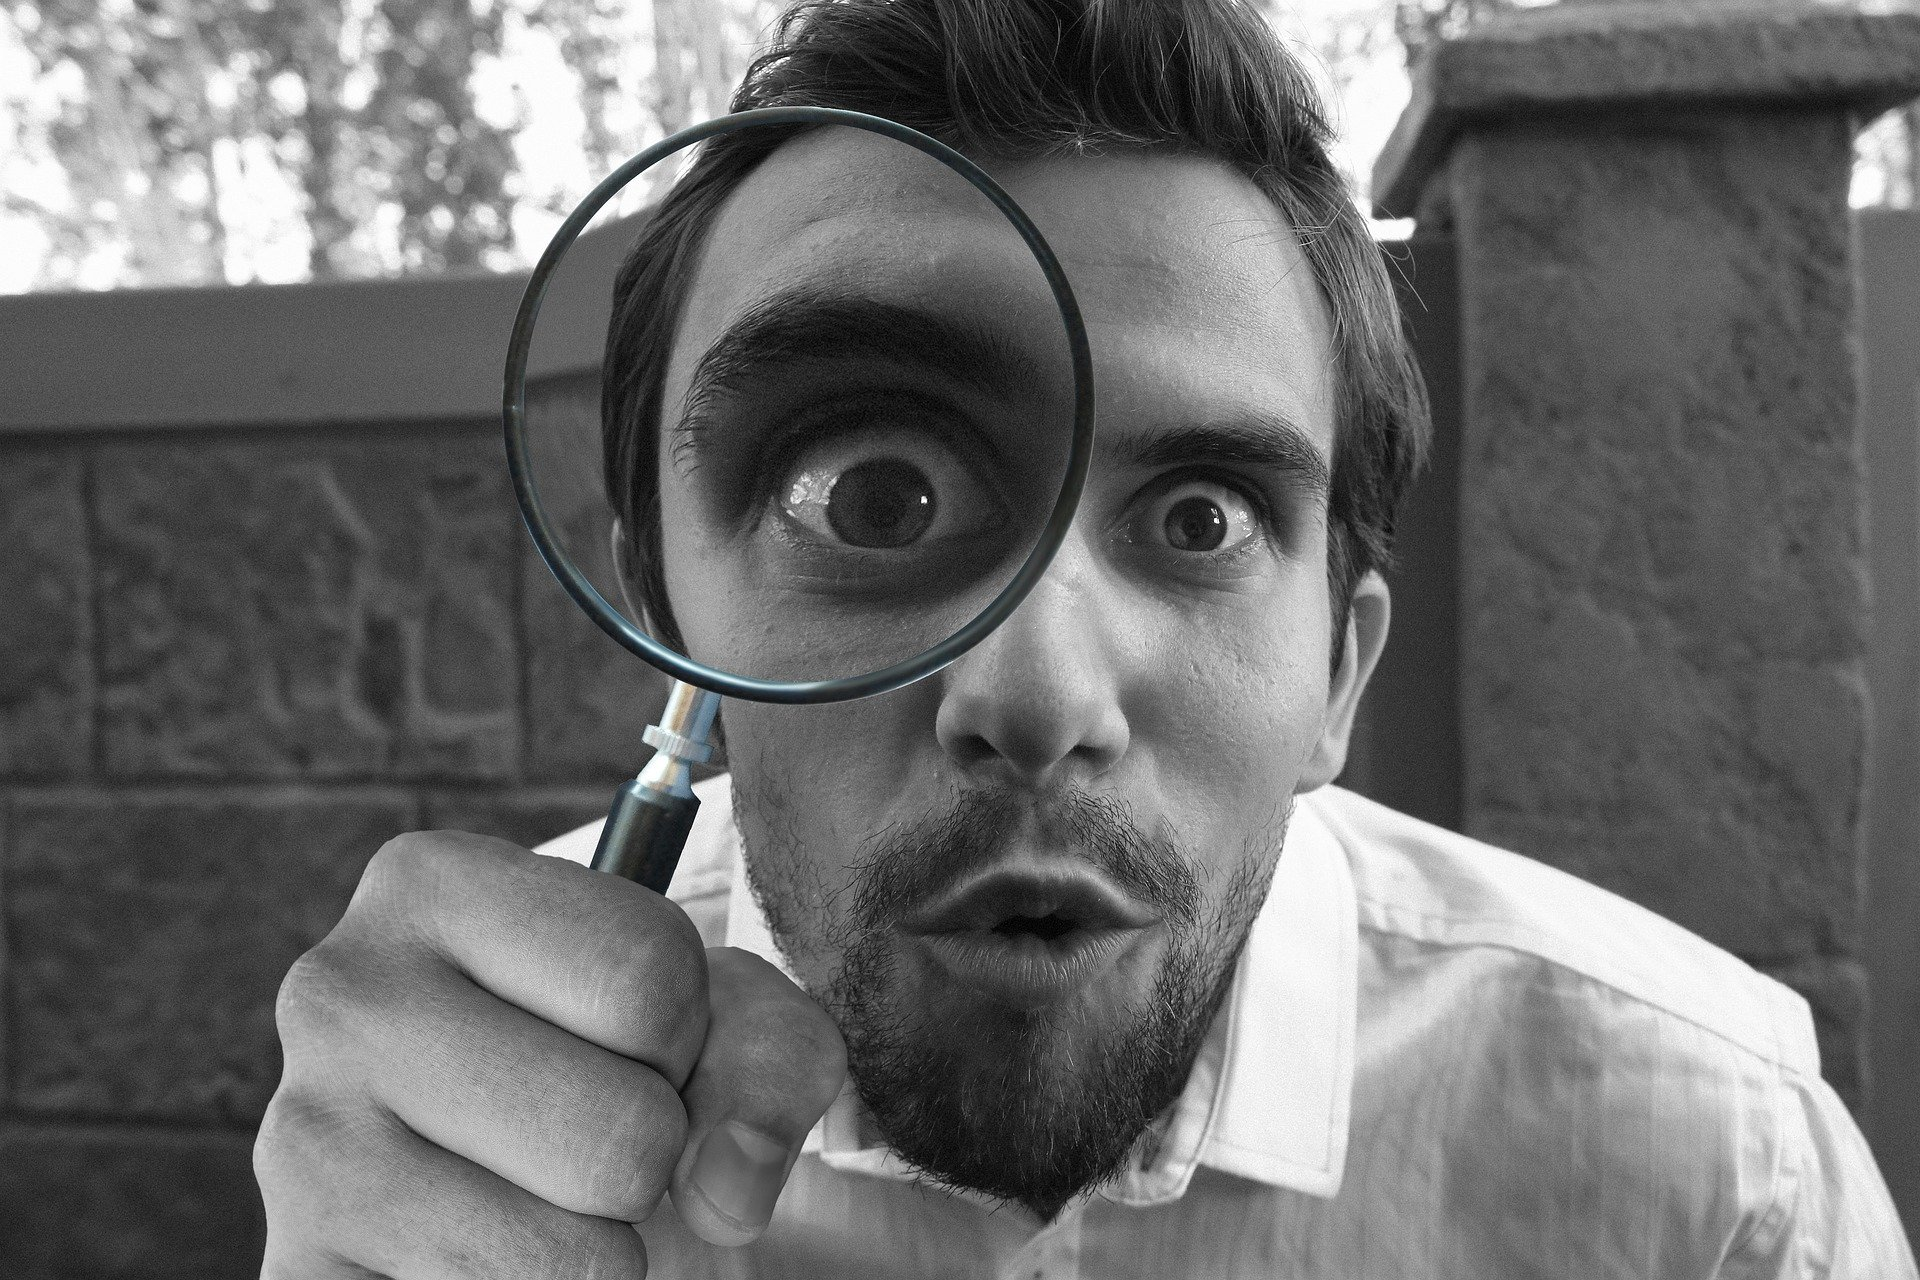 A man inspecting something with a magnifying glass. | Source: Pixabay.